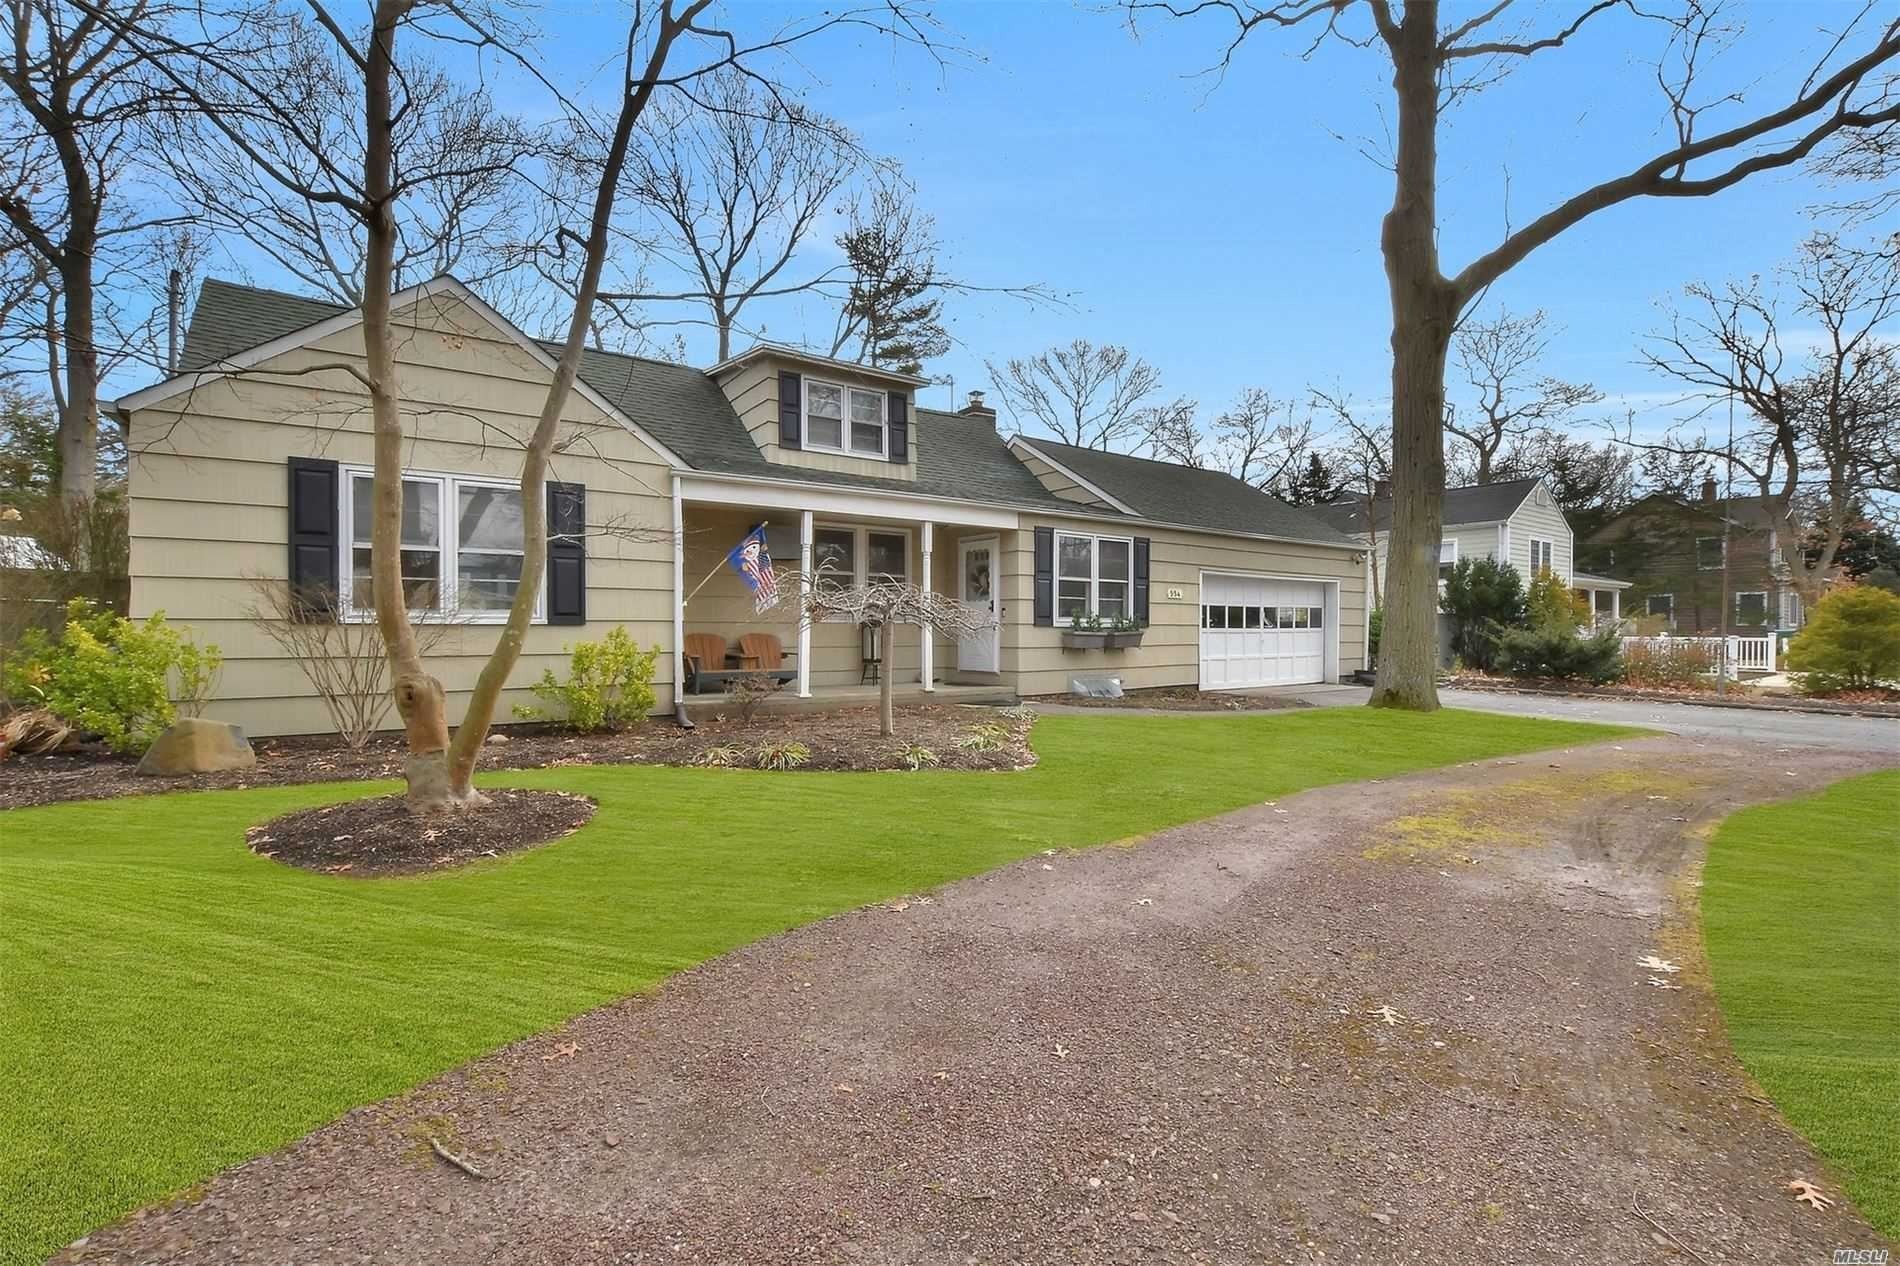 554 Ackerson Boulevard, Brightwaters, NY 11718 - MLS#: 3195840